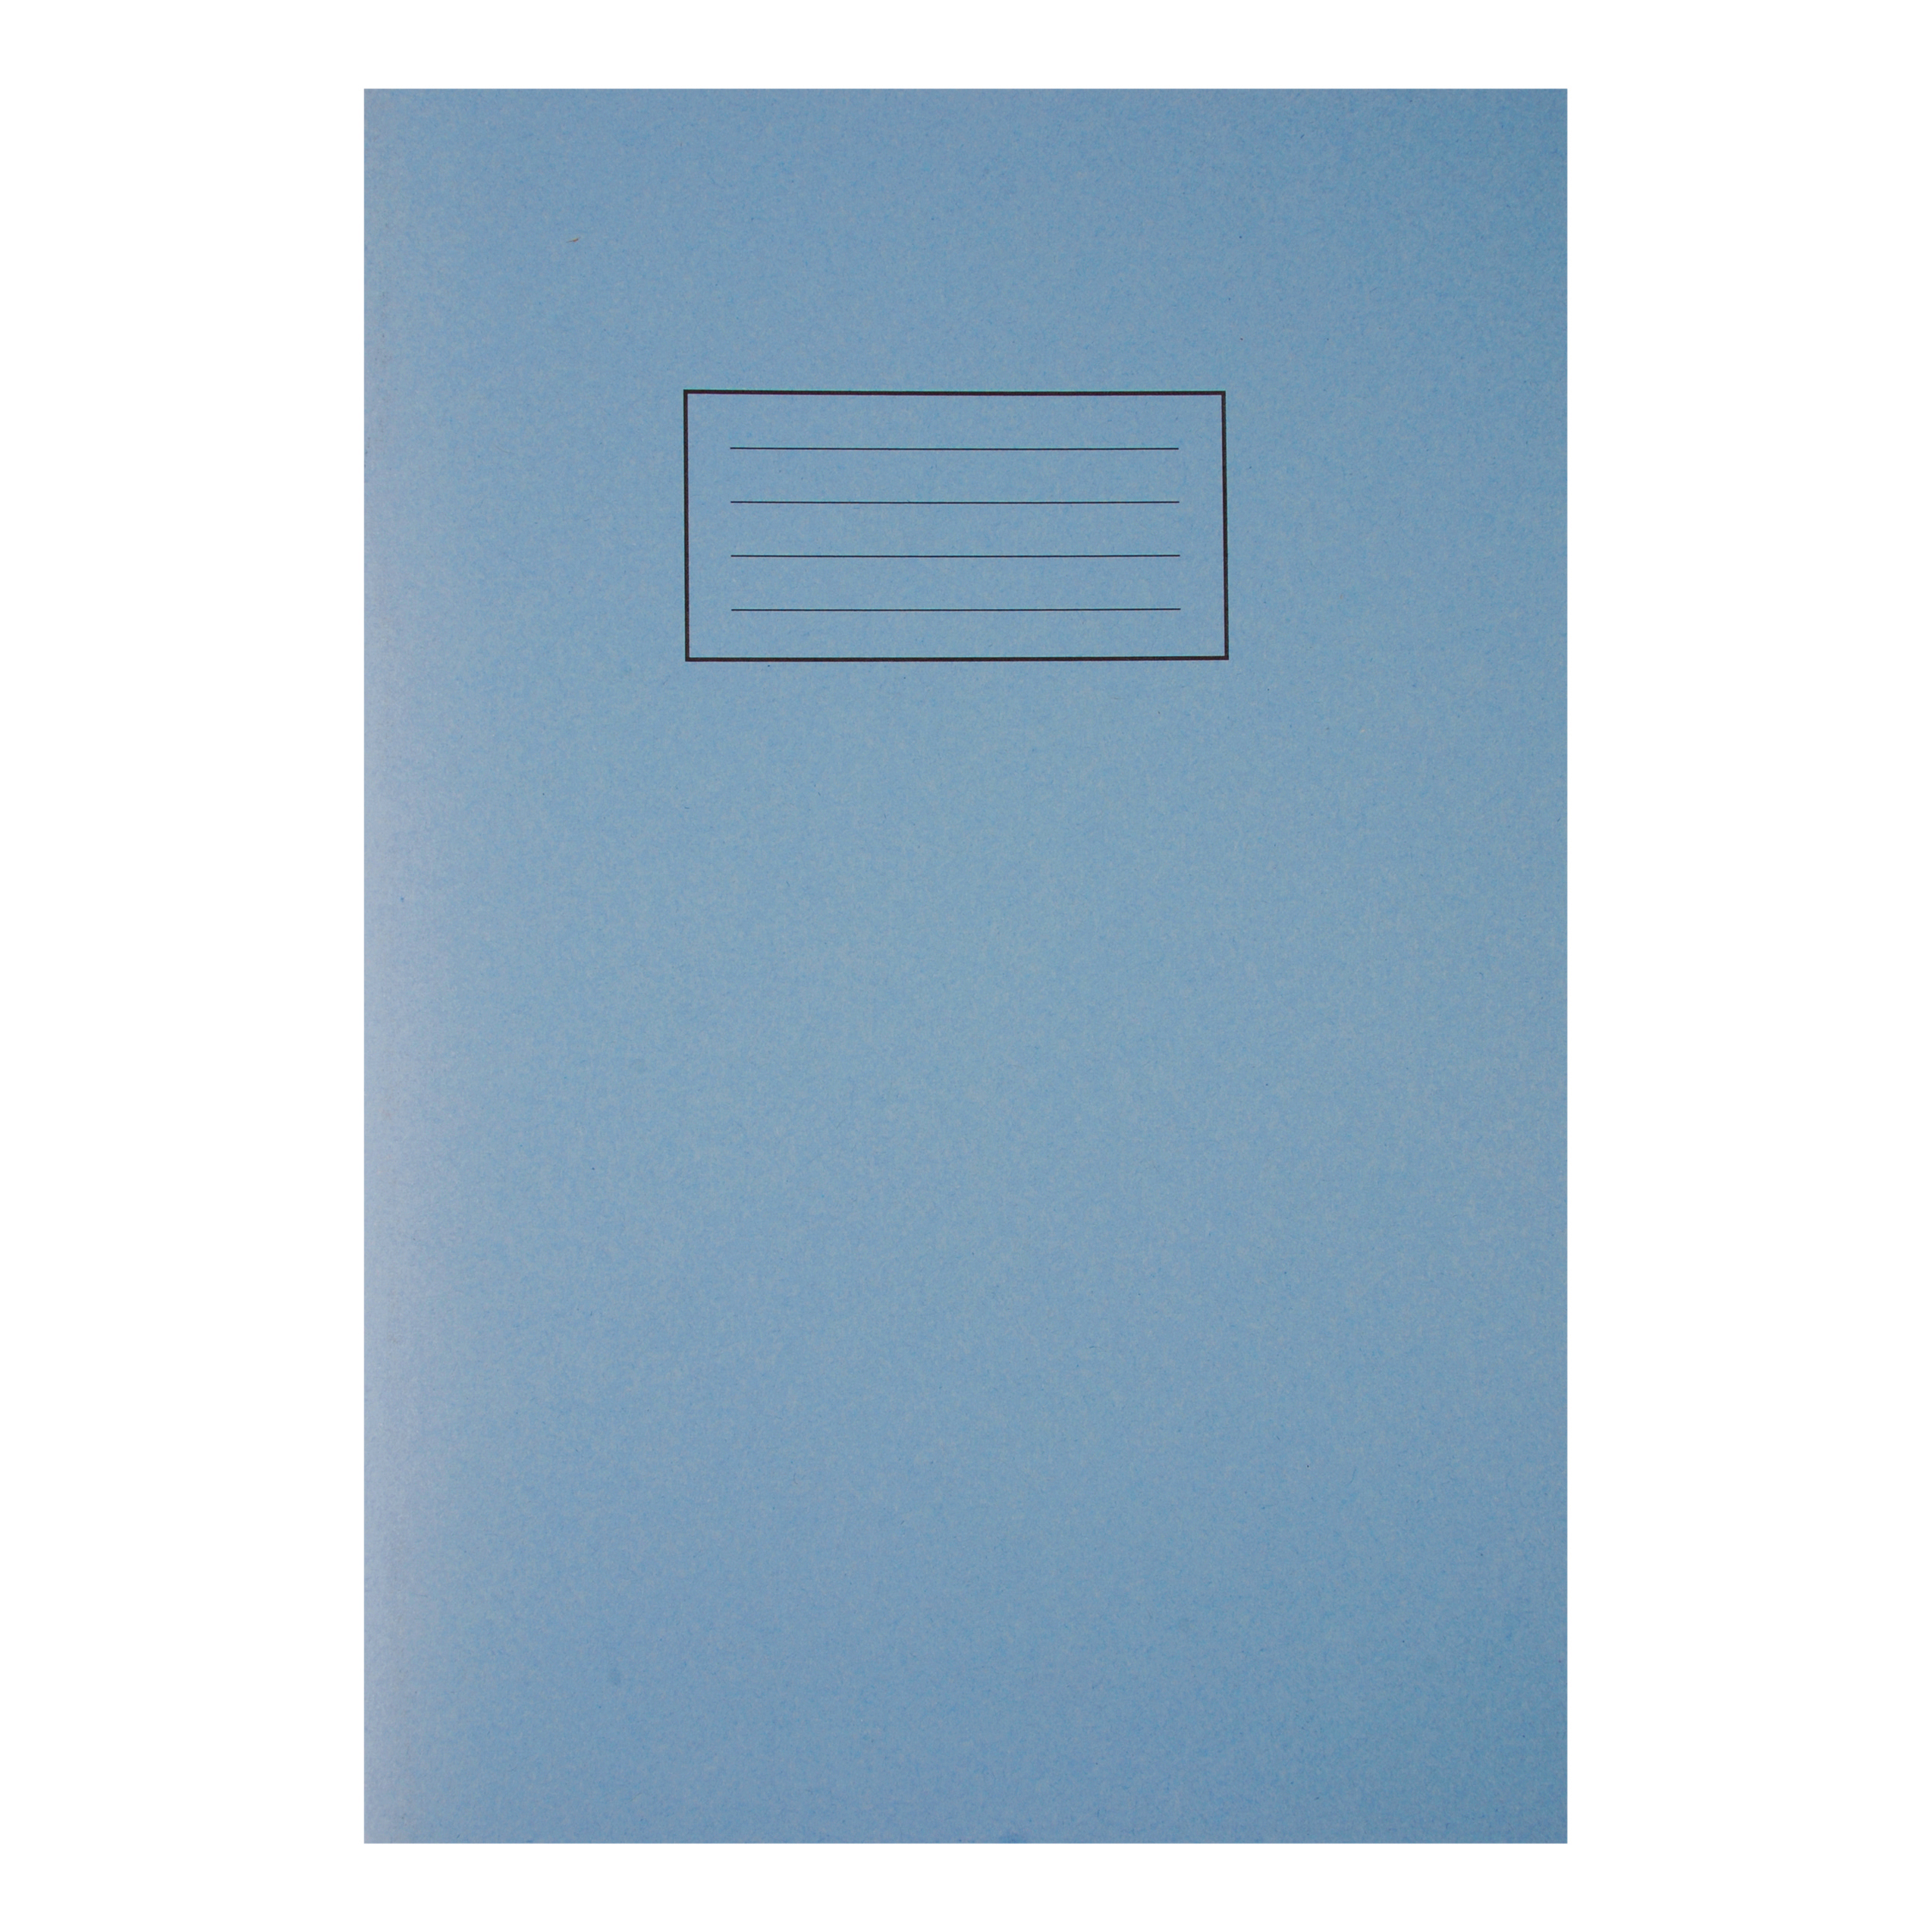 Silvine Exercise Book Ruled and Margin 80 Pages 75gsm A4 Blue Ref EX108 [Pack 10]